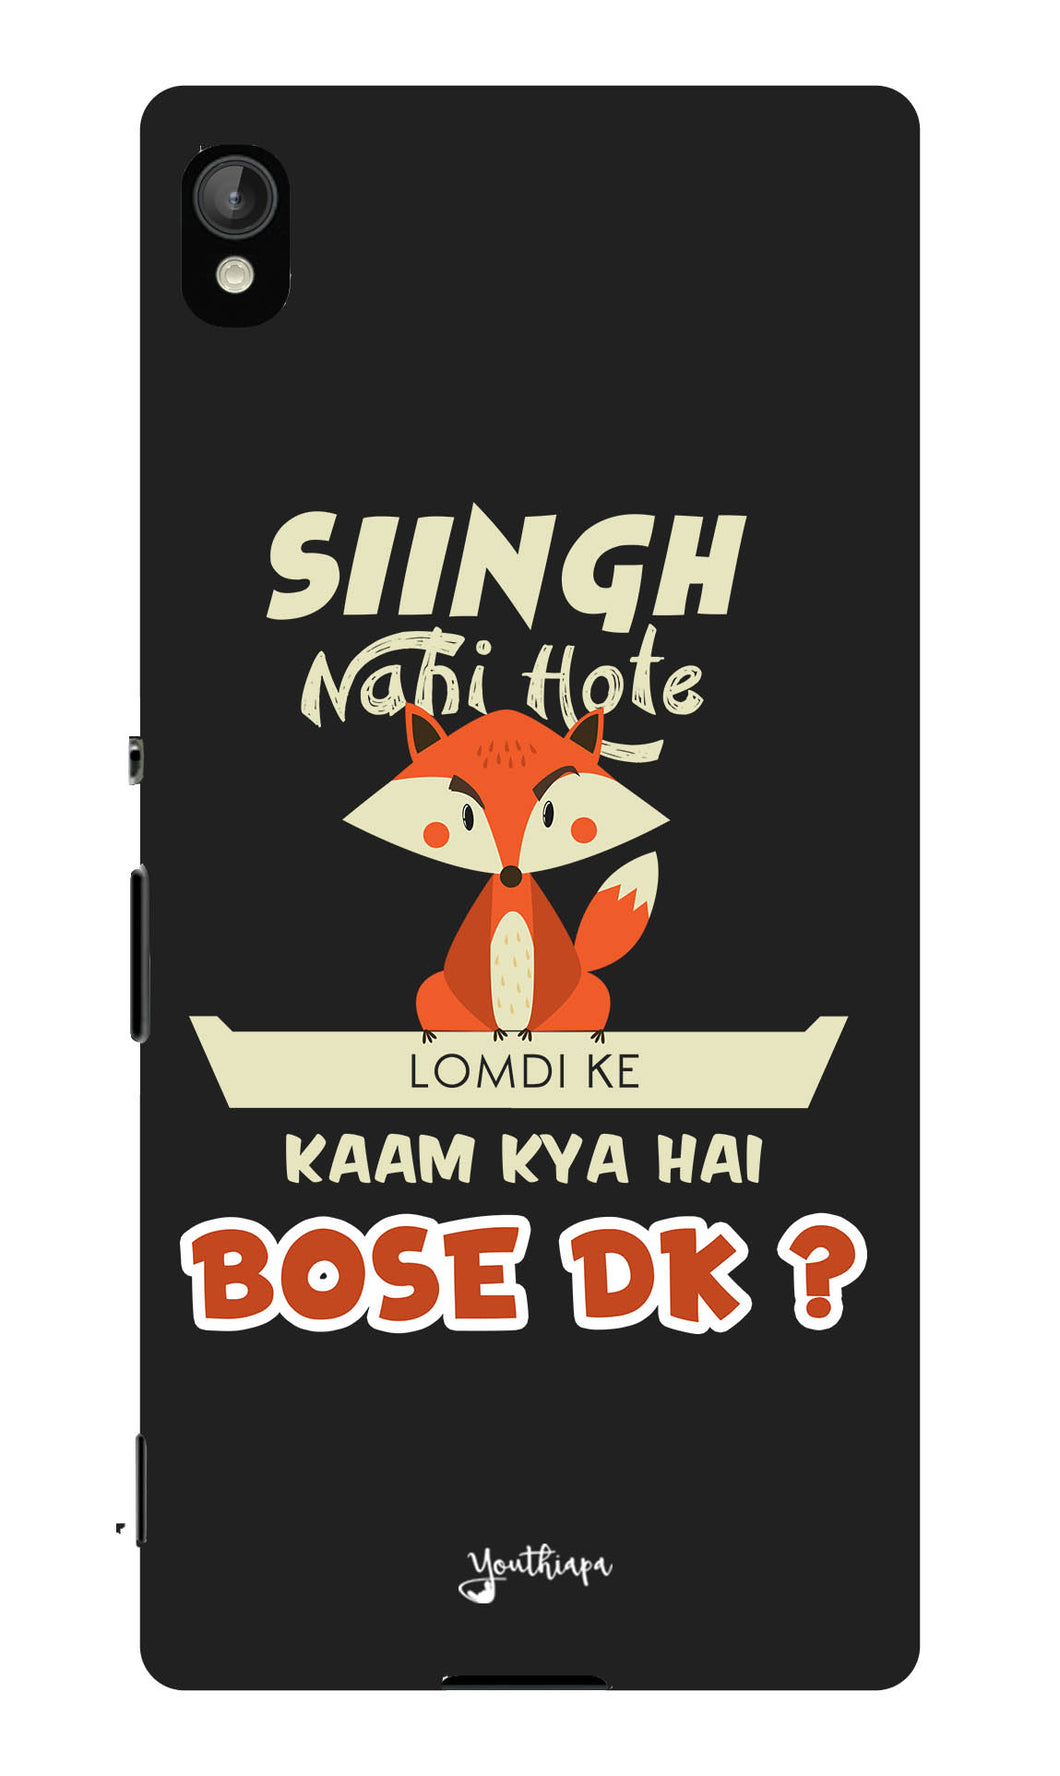 Singh Nahi Hote for Sony Xperia Z4